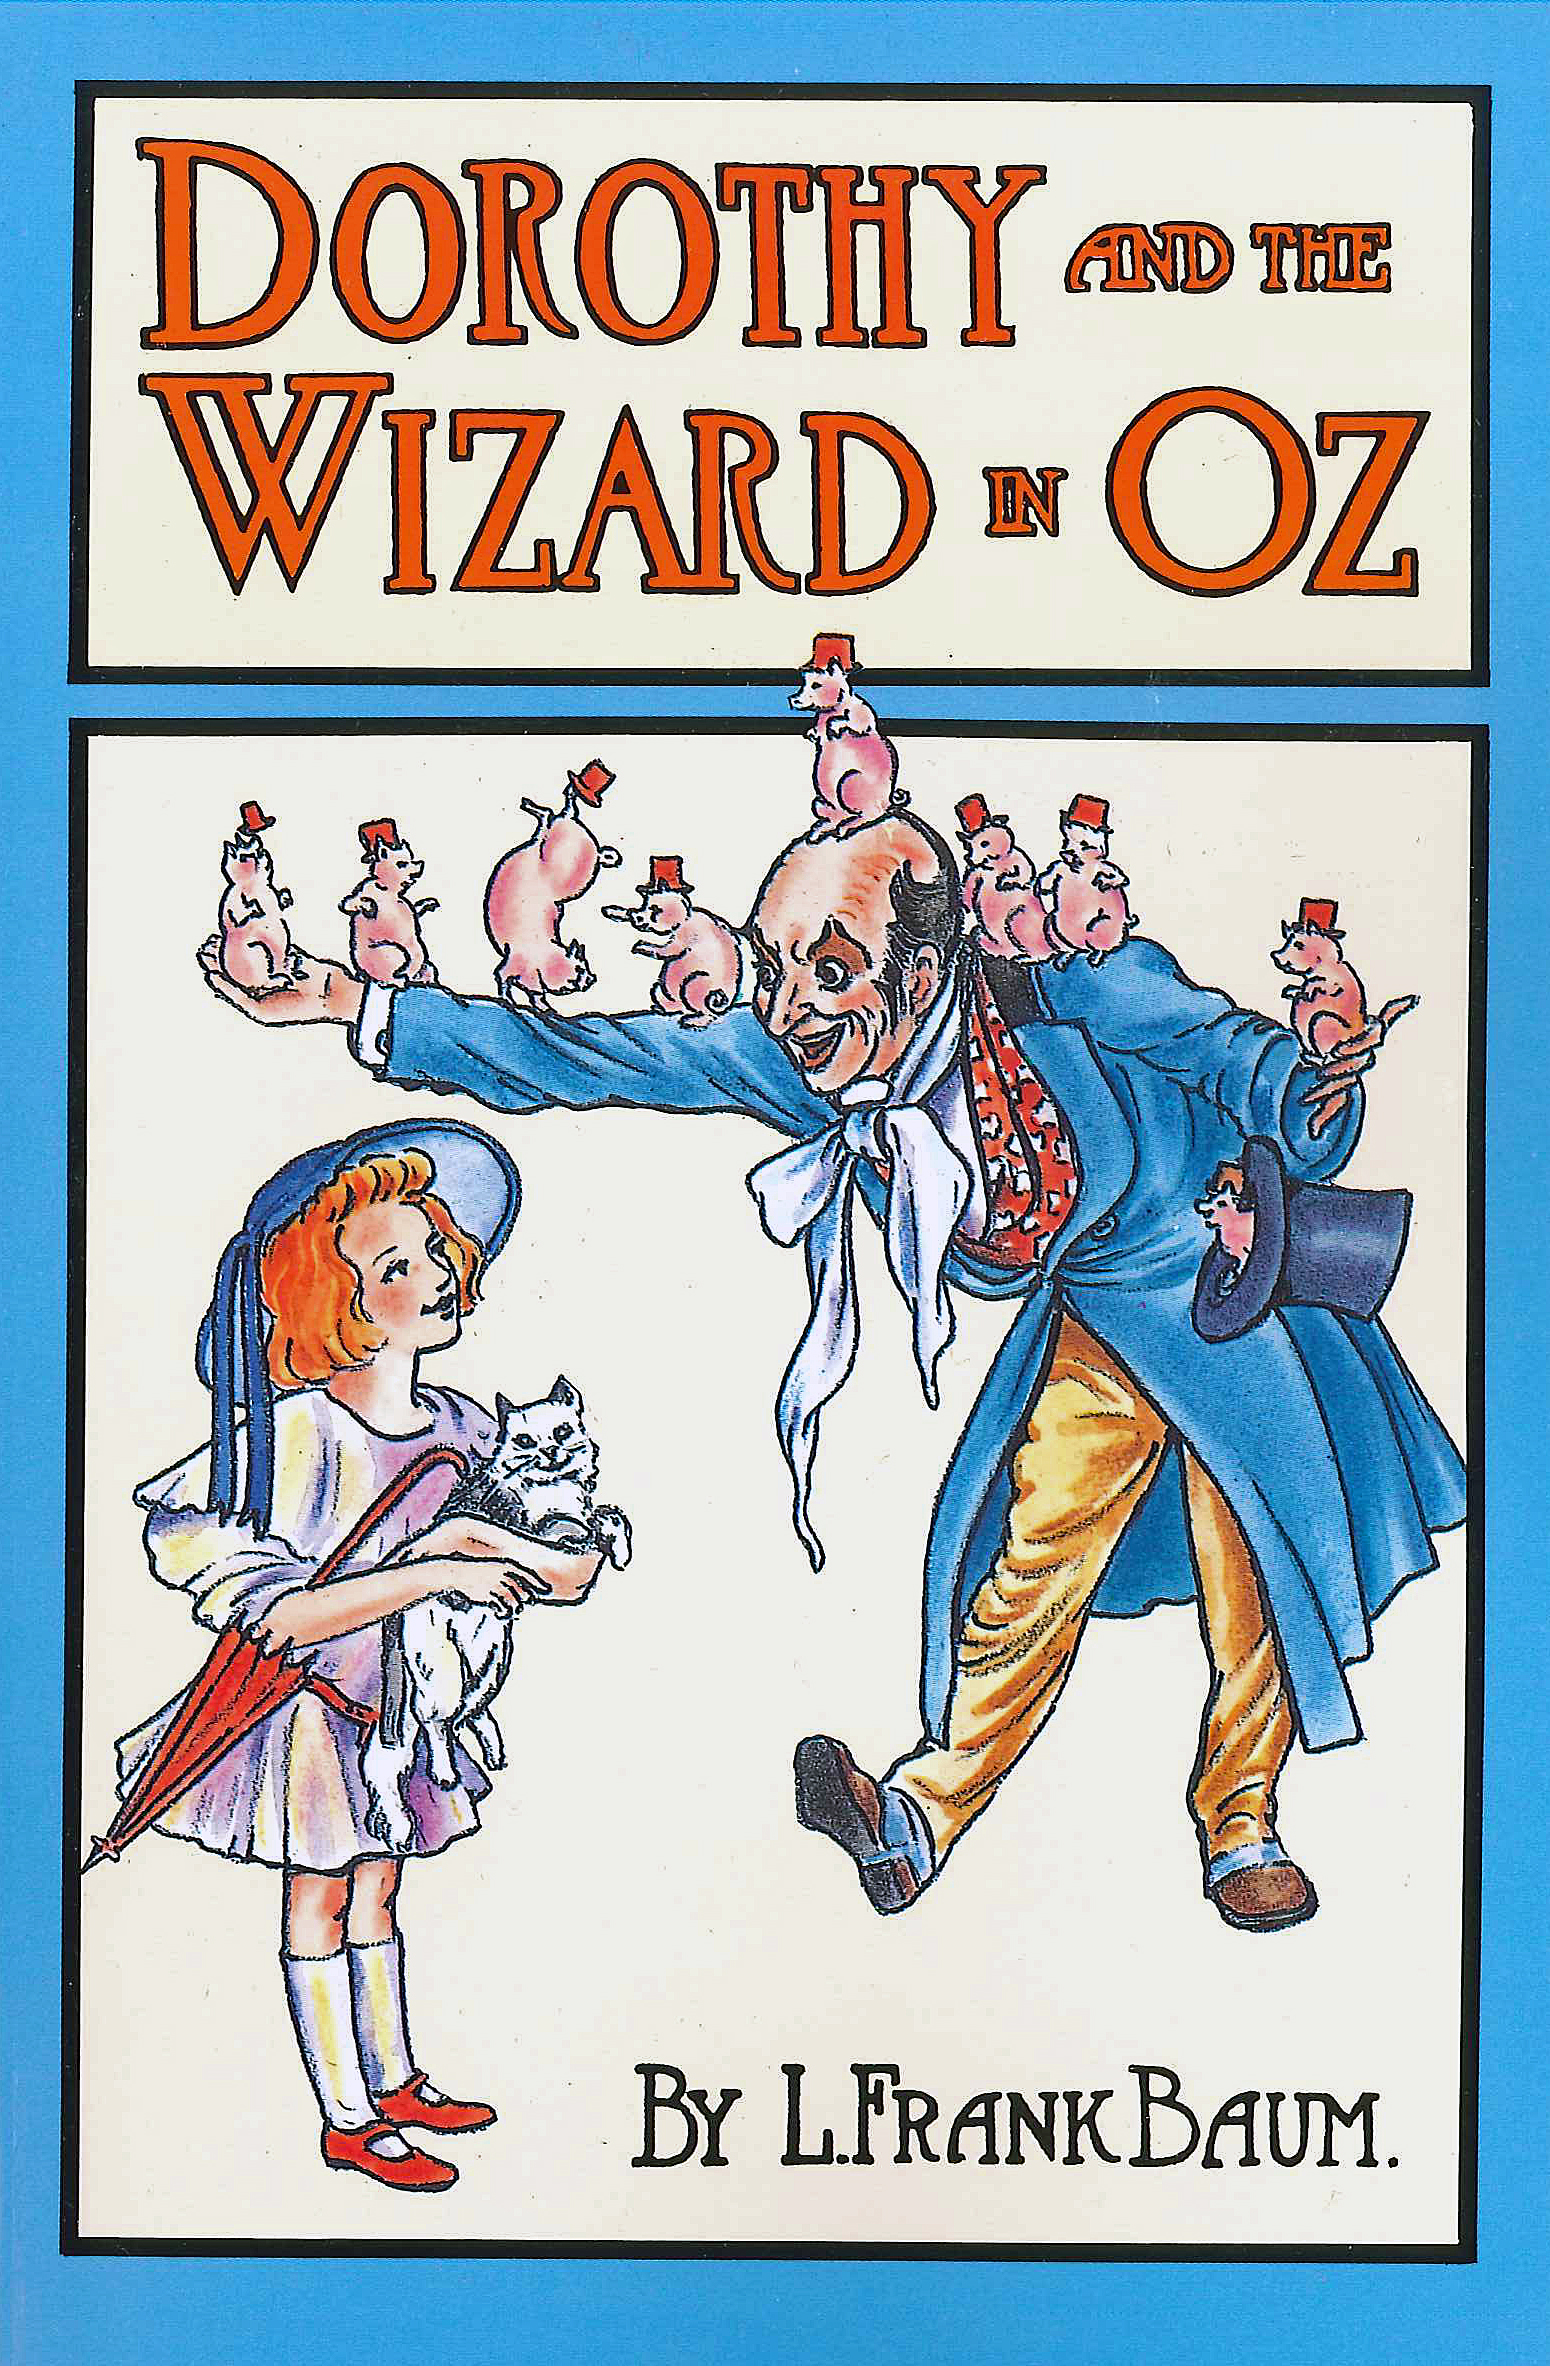 Dorothy and the Wizard in OZ by L.Frank Baum | Coronado Historical ...